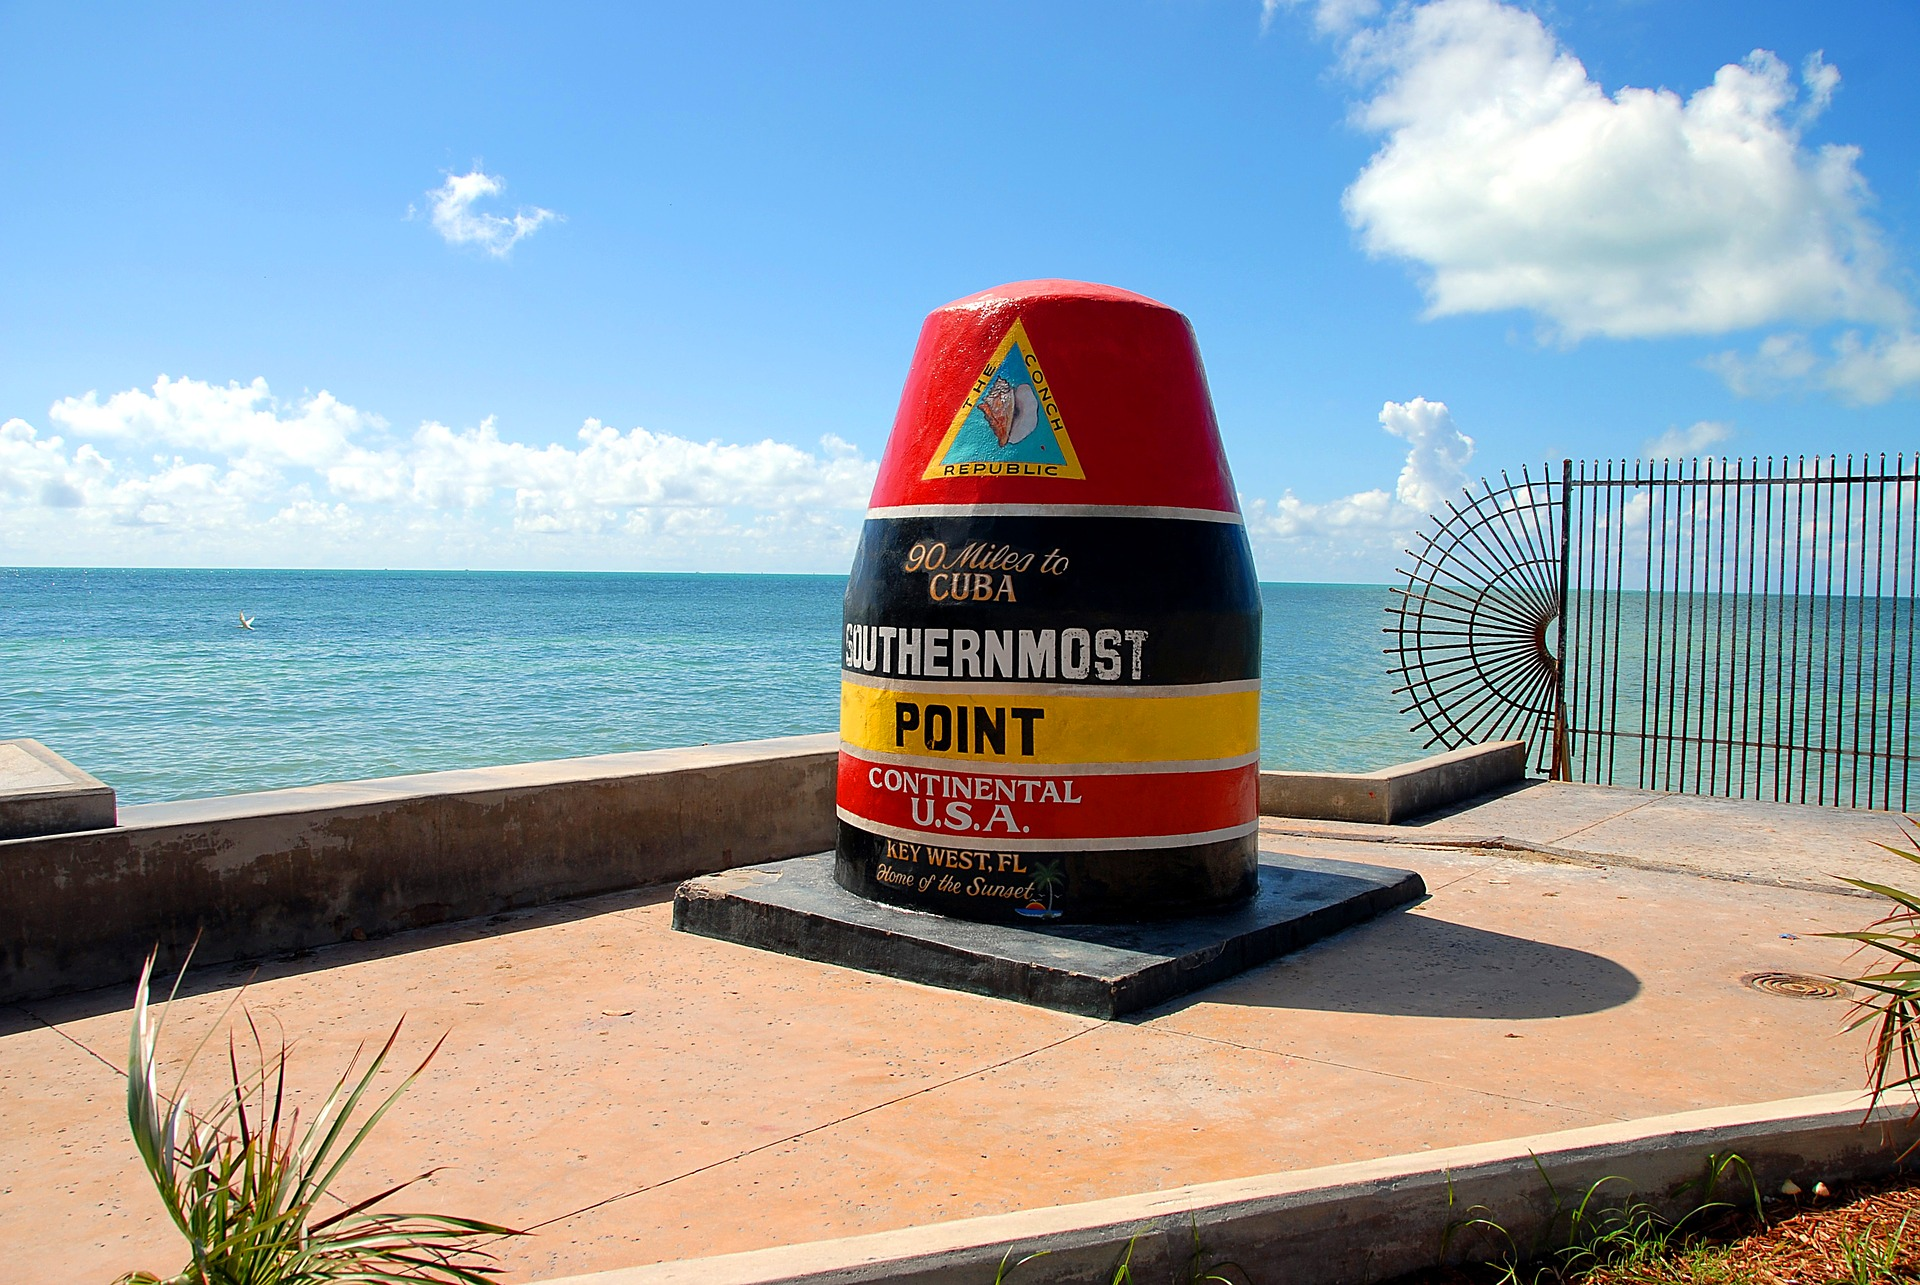 Key West Tips: Helpful Things to Know for a Kickass Weekend in Key West | things to do in Key West, where to get the best key lime pie in key west, and more. #keywest #florida #southflorida #mywanderlustylife #conchrepublic #keylimepie